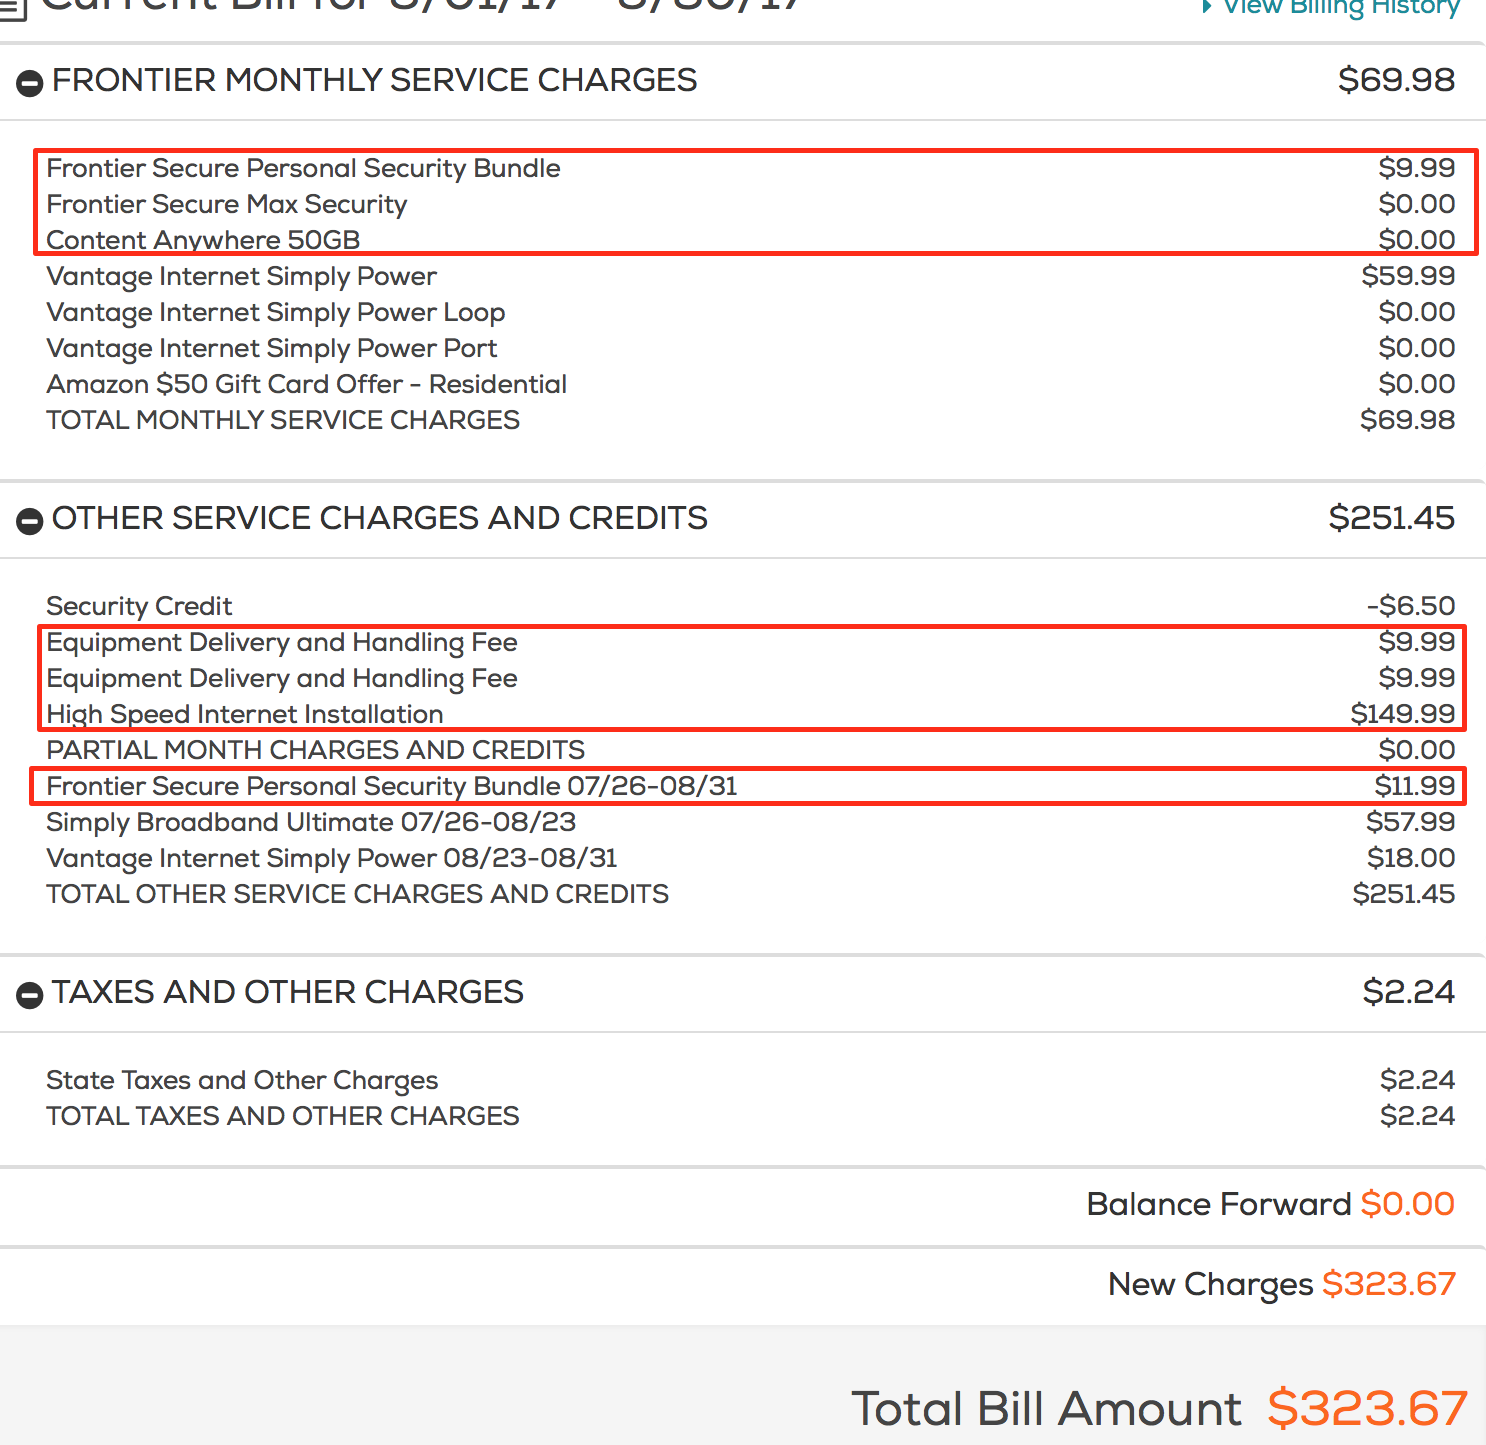 Frontier Communications bill with mistakes and bloat